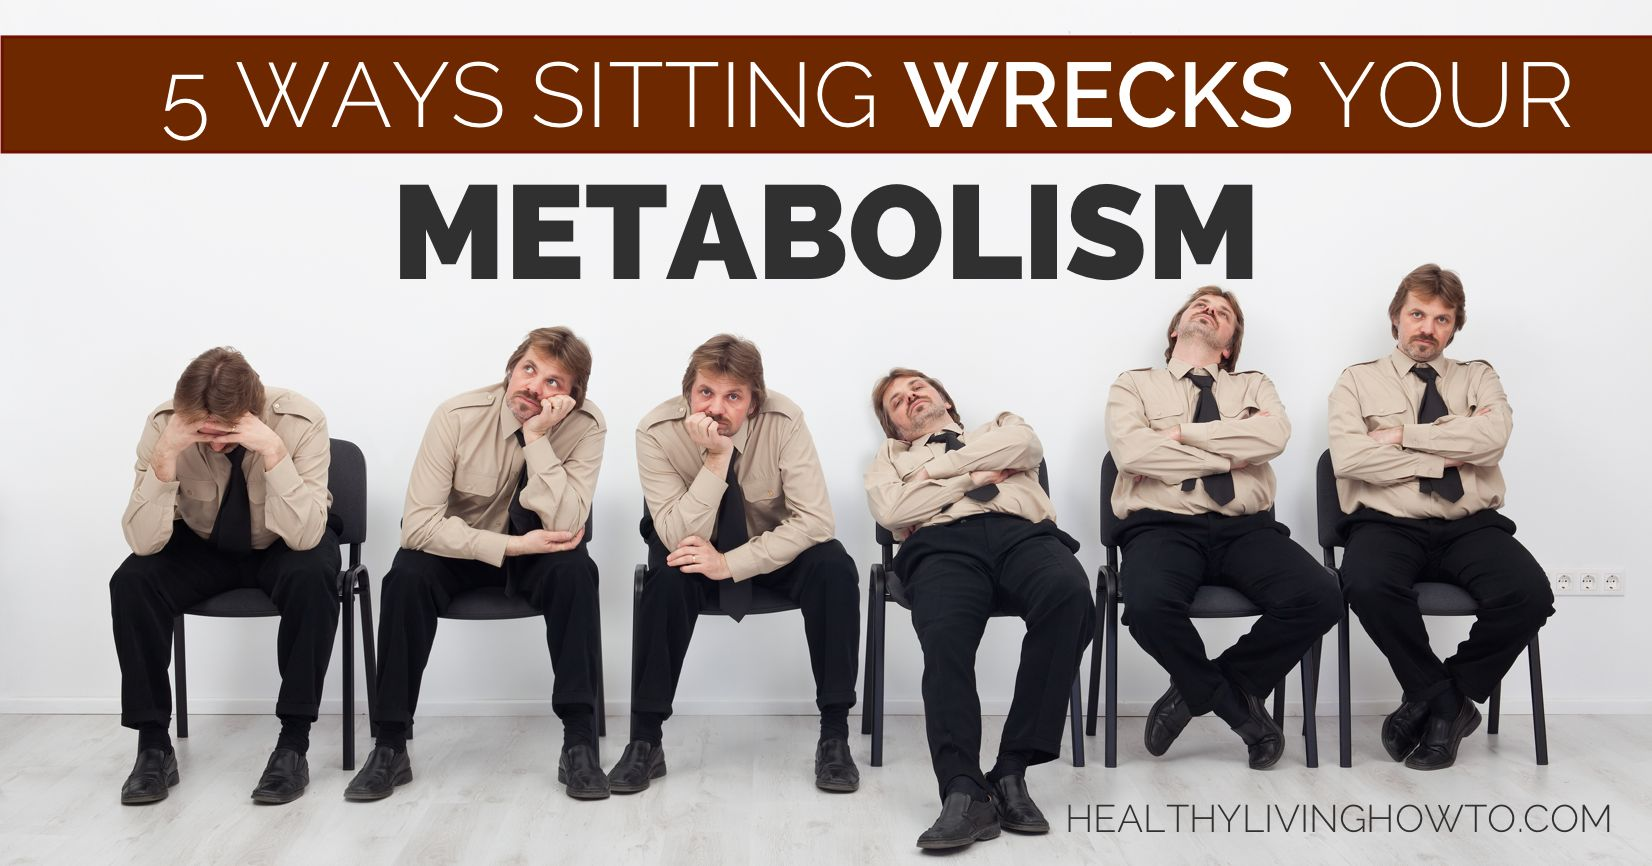 5 Ways Sitting Wrecks Your Metabolism | healthylivinghowto.com